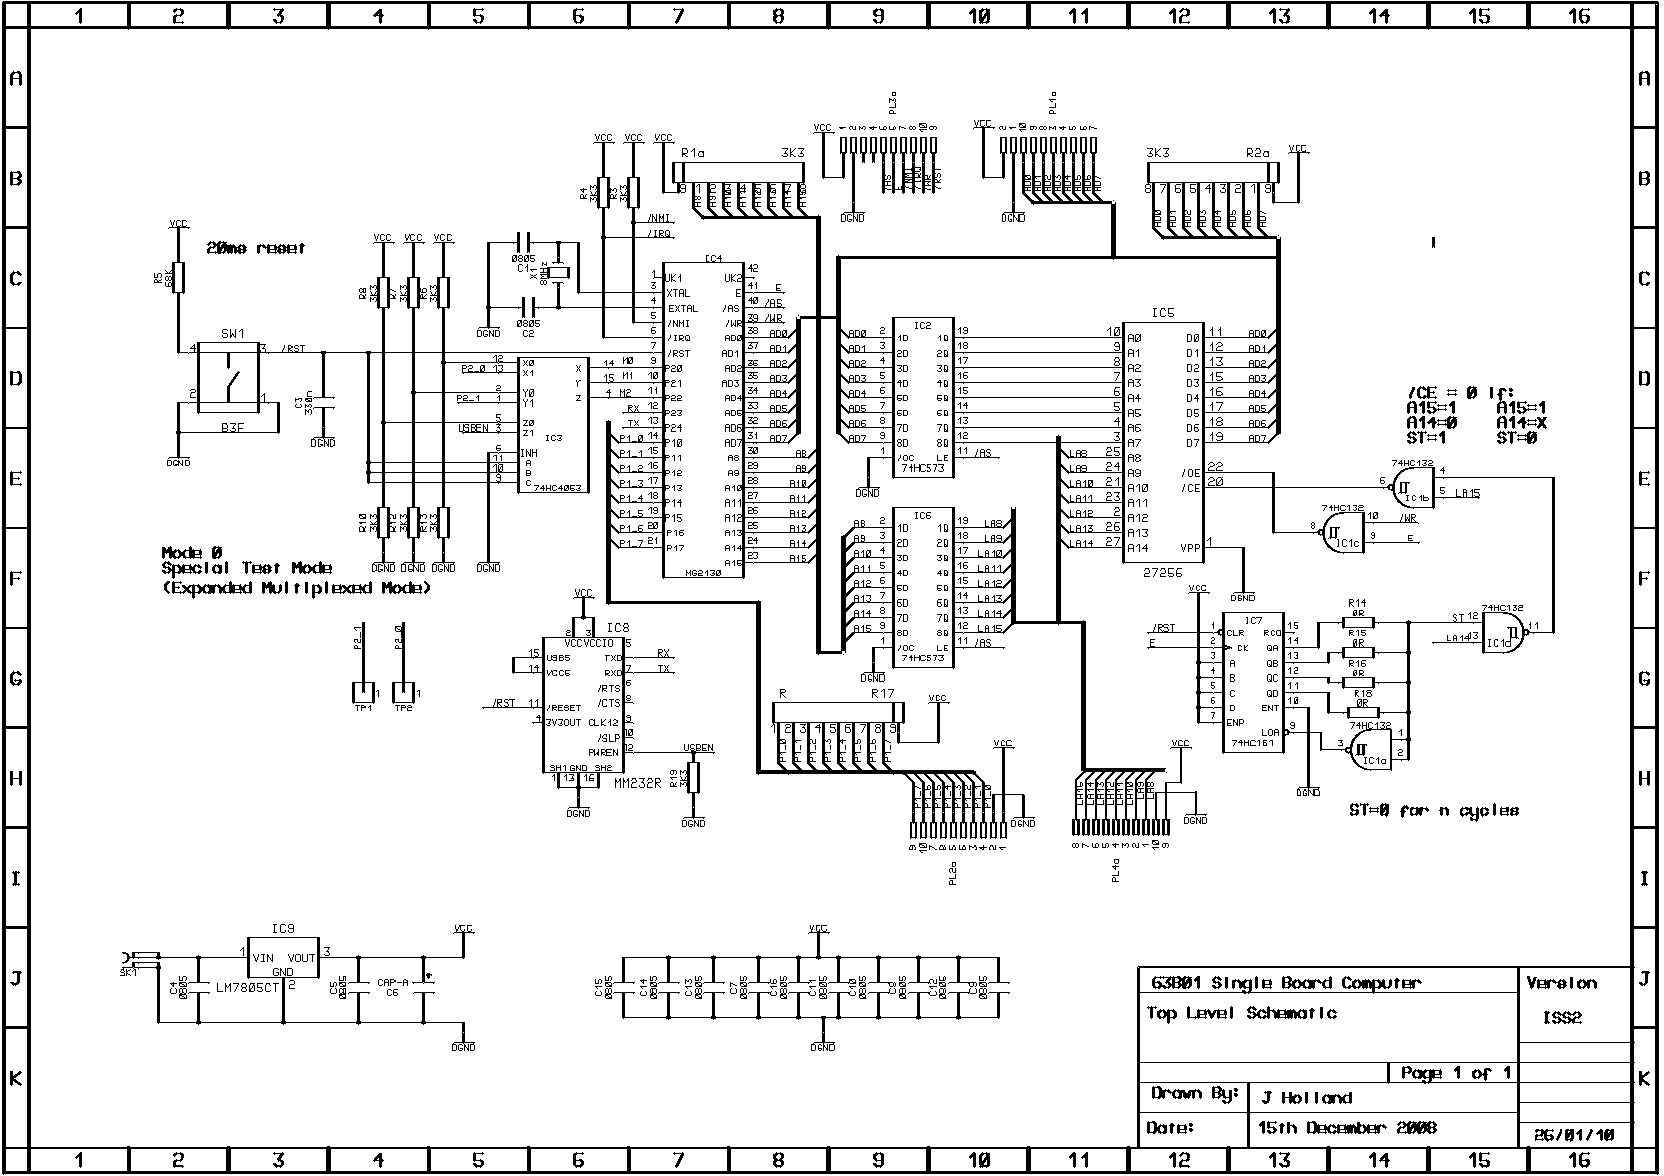 2001 honda prelude wiring diagram xtrons stereo geo tracker engine swap nissan free image for